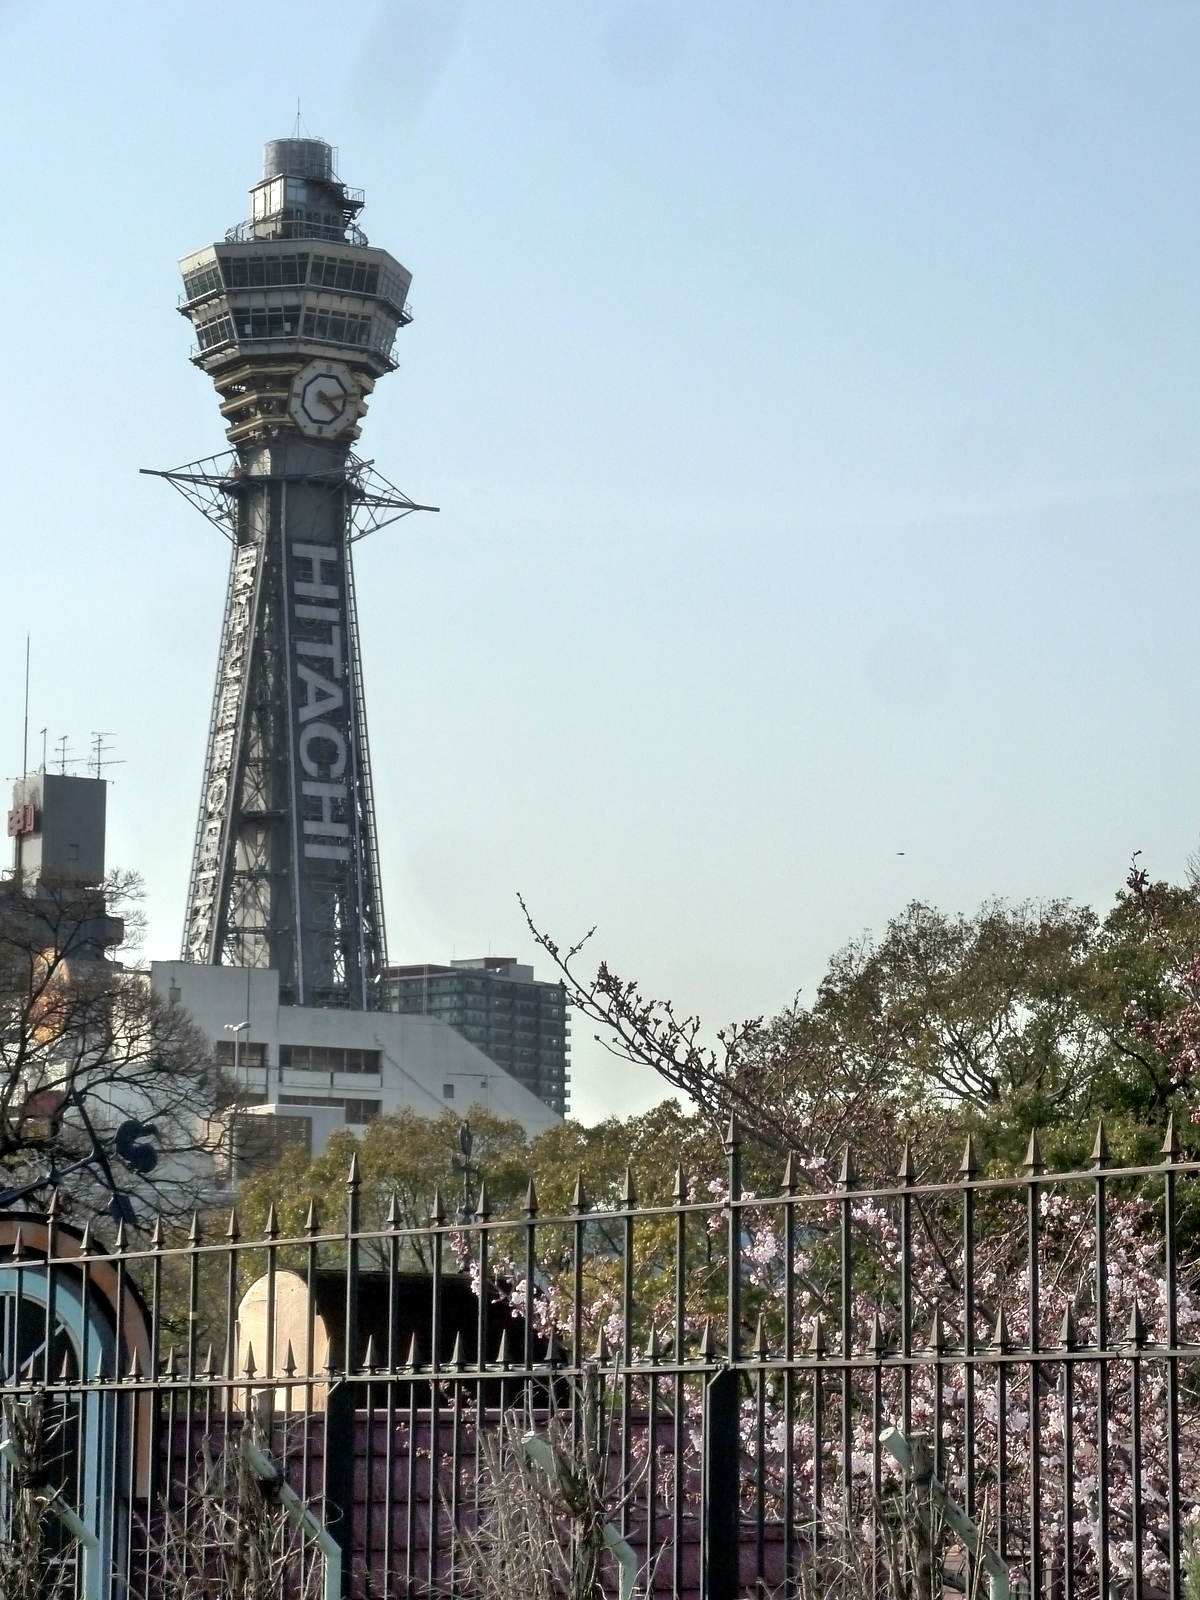 Osaka Tsutenkaku tower